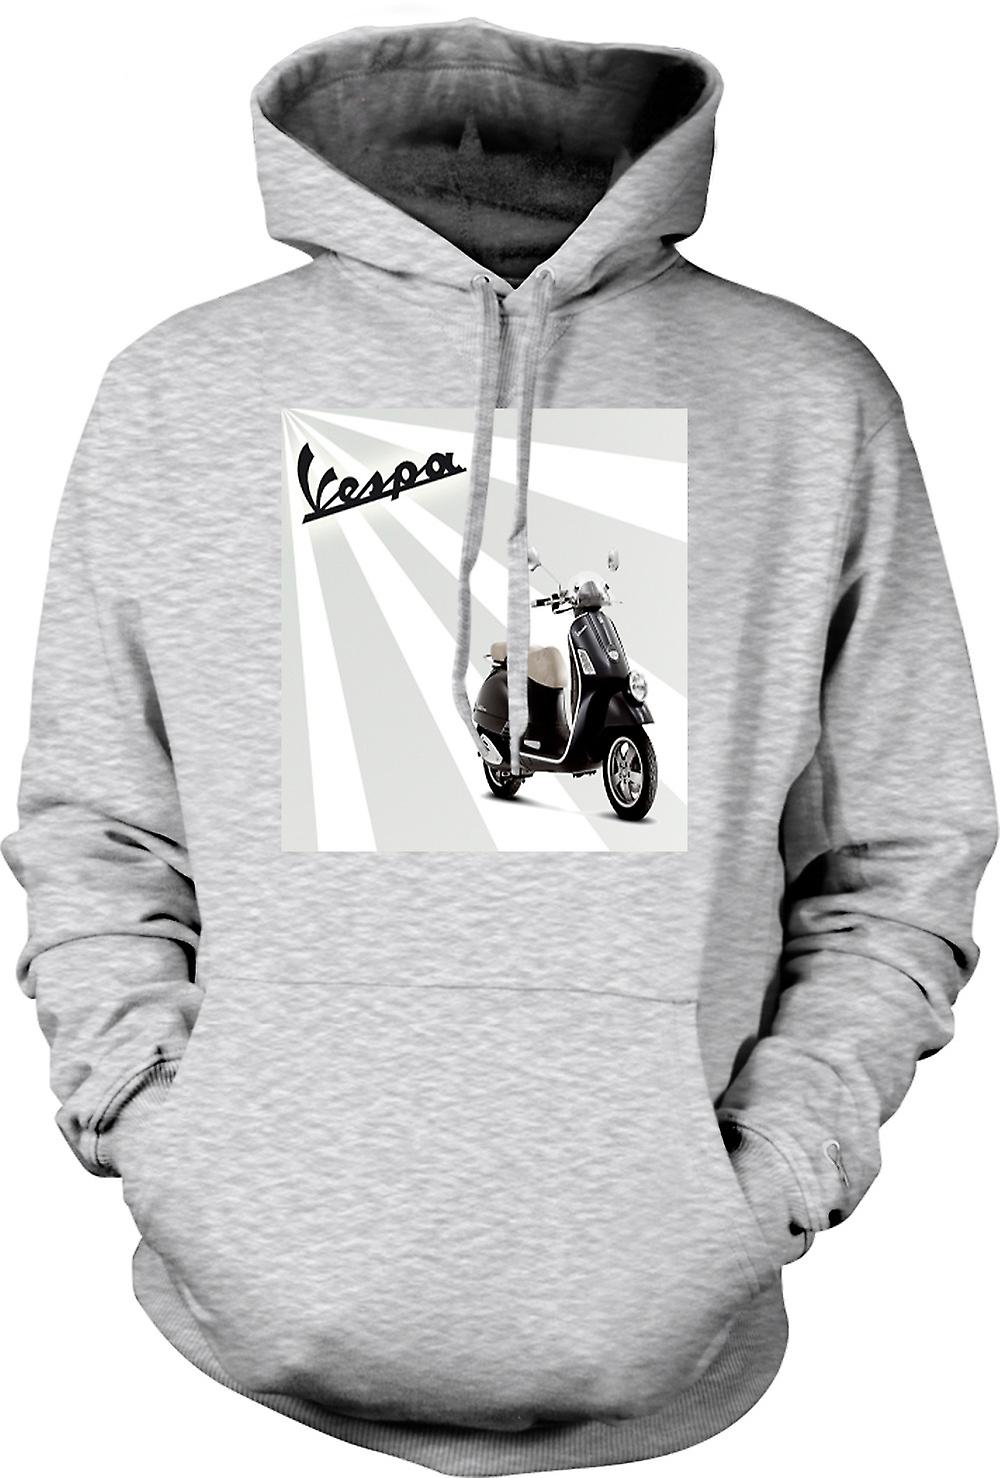 Mens-Hoodie - Vespa - coole Scooter